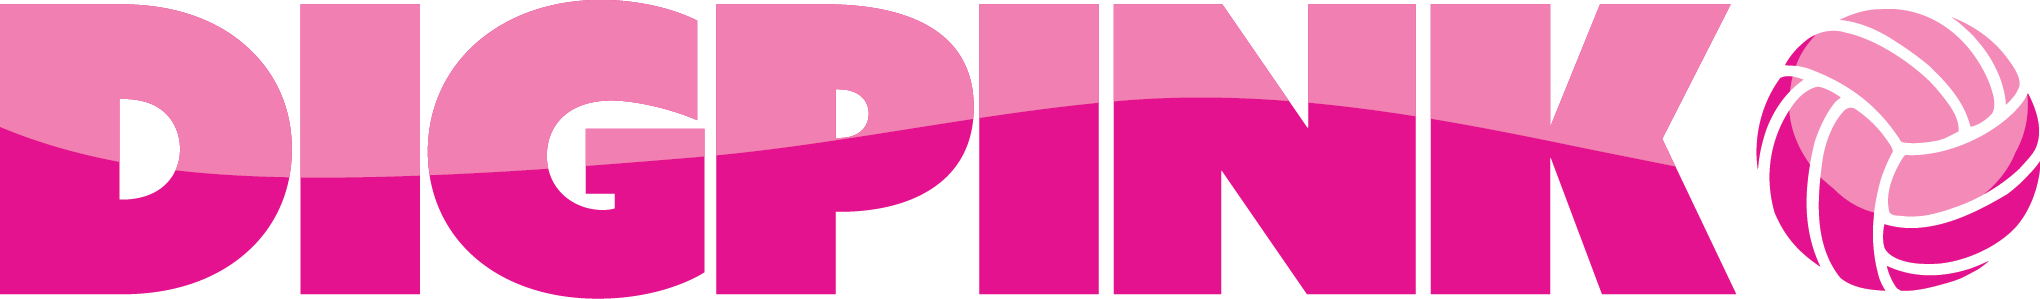 Volleyball clipart border. Free dig pink cliparts